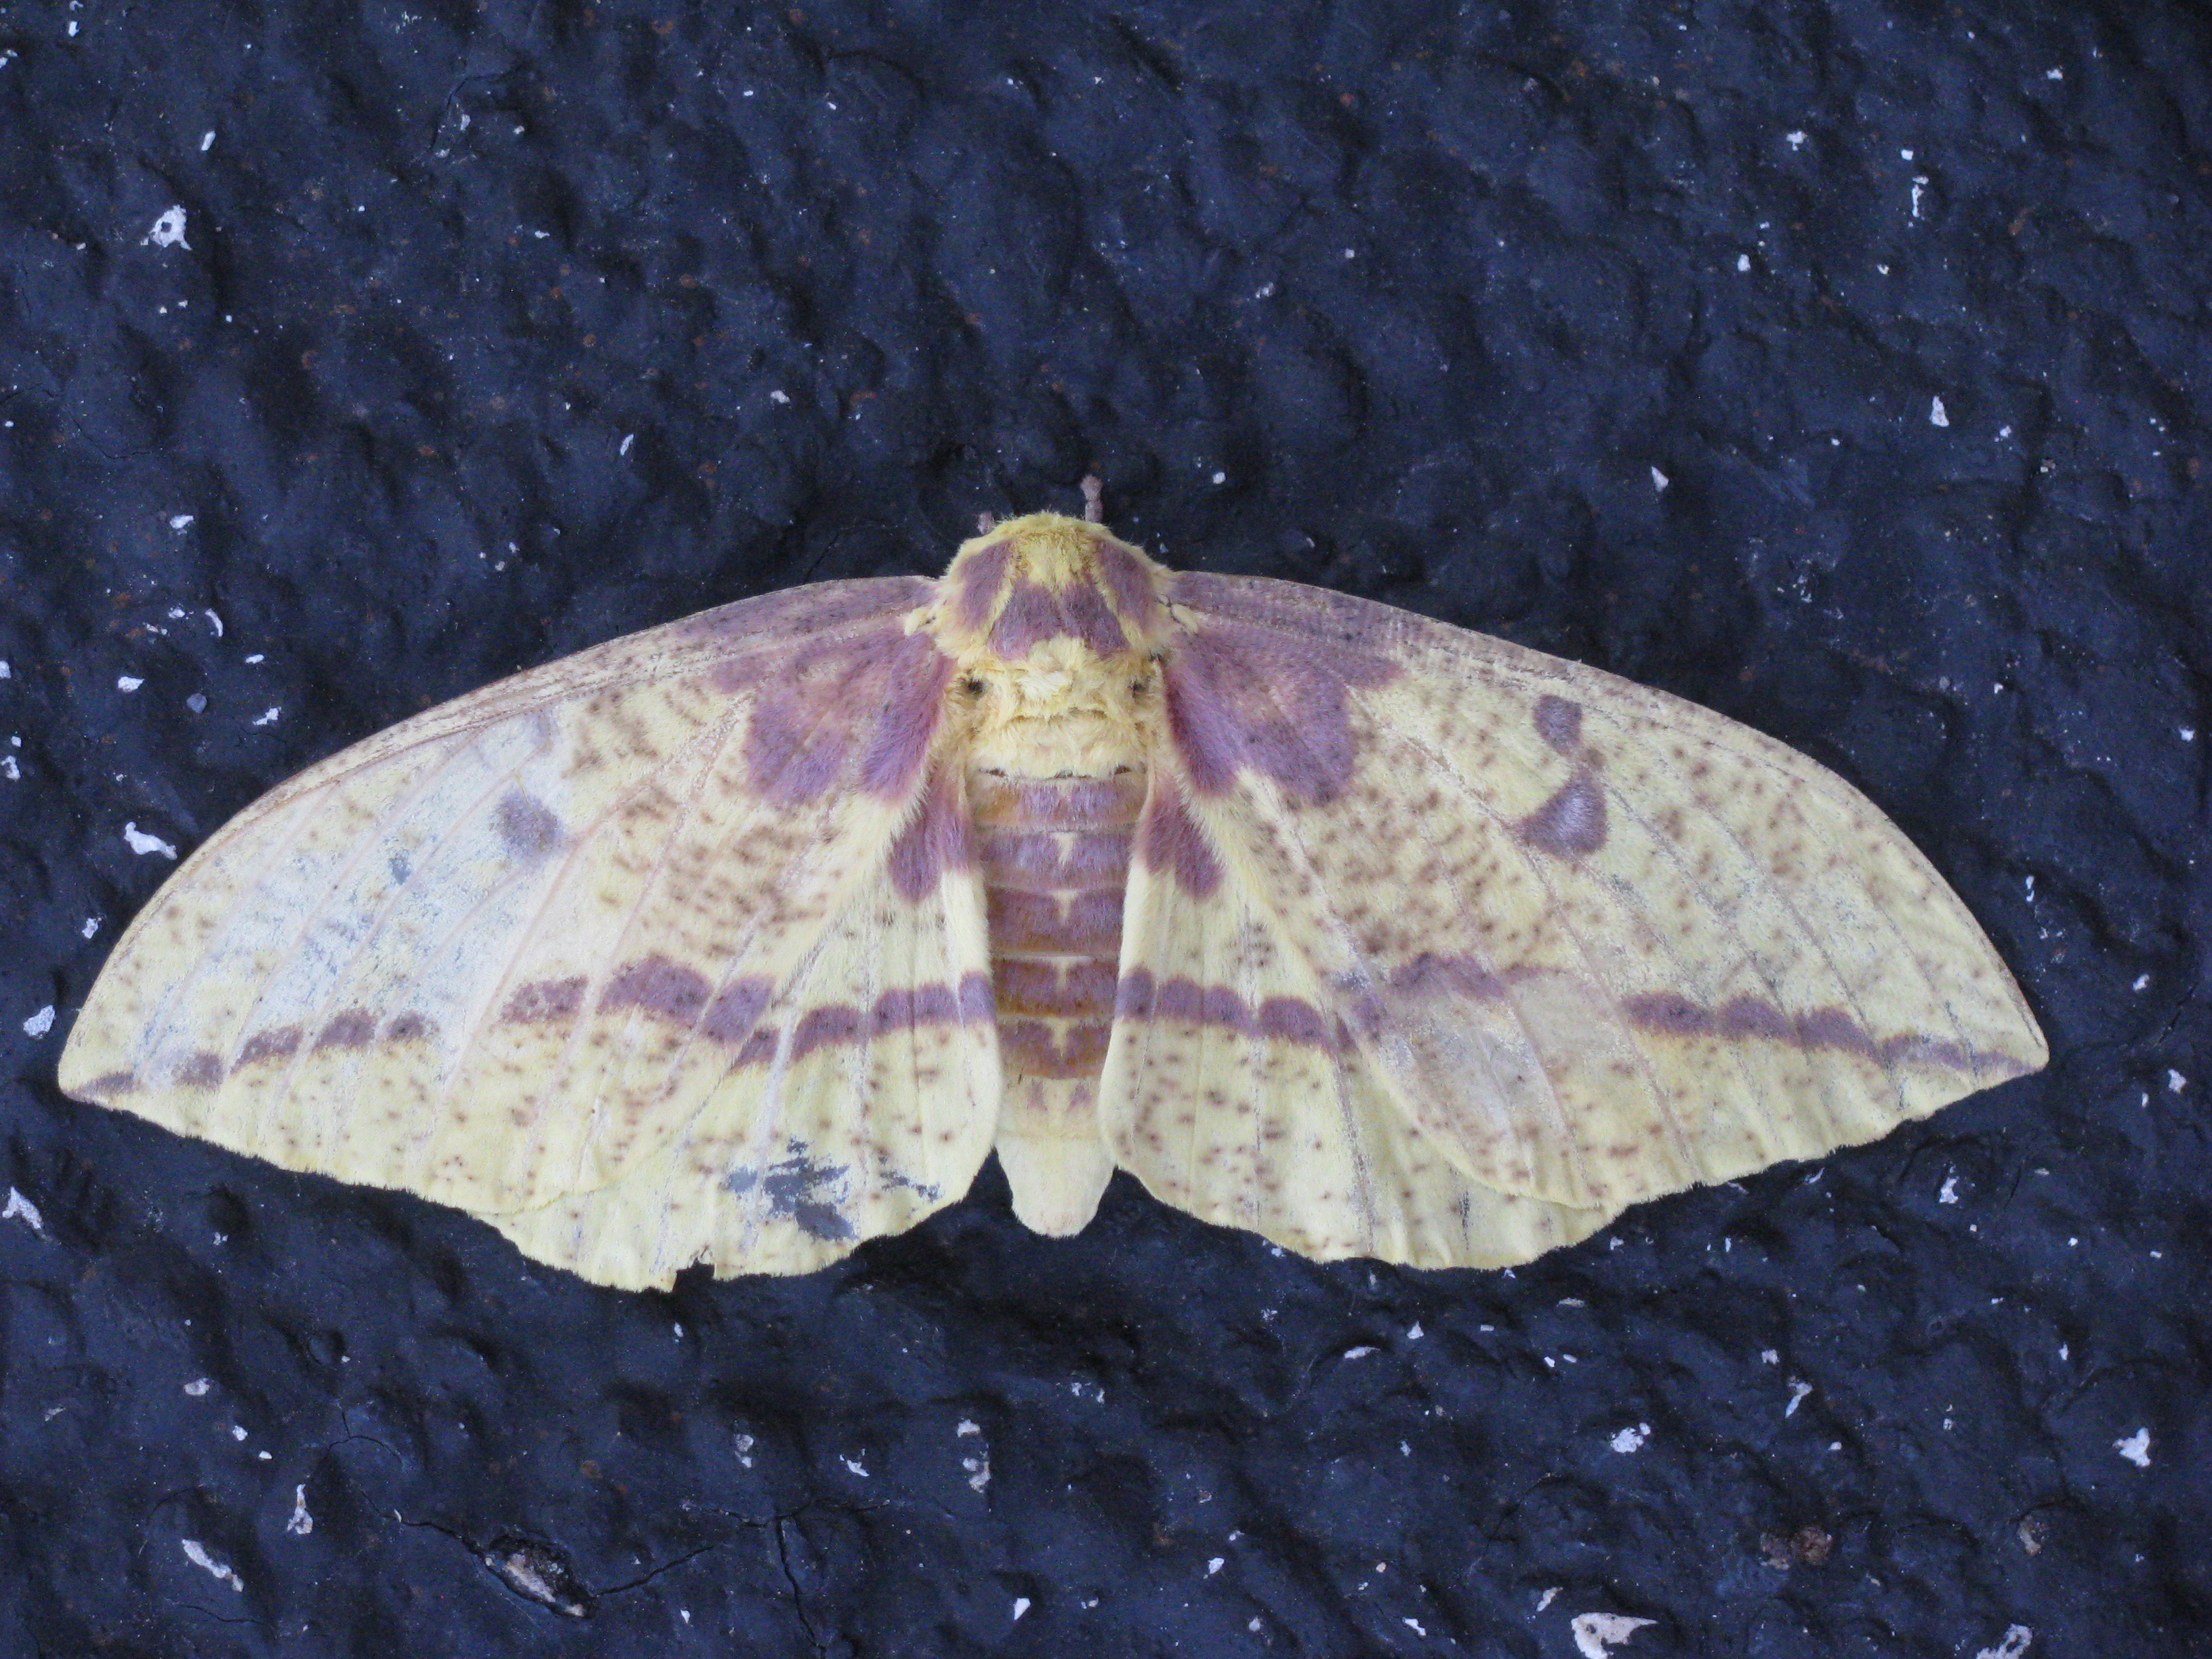 An imperial moth rests on the road by the Carpenter's Shop. Photo: Sue Quarto, FESS